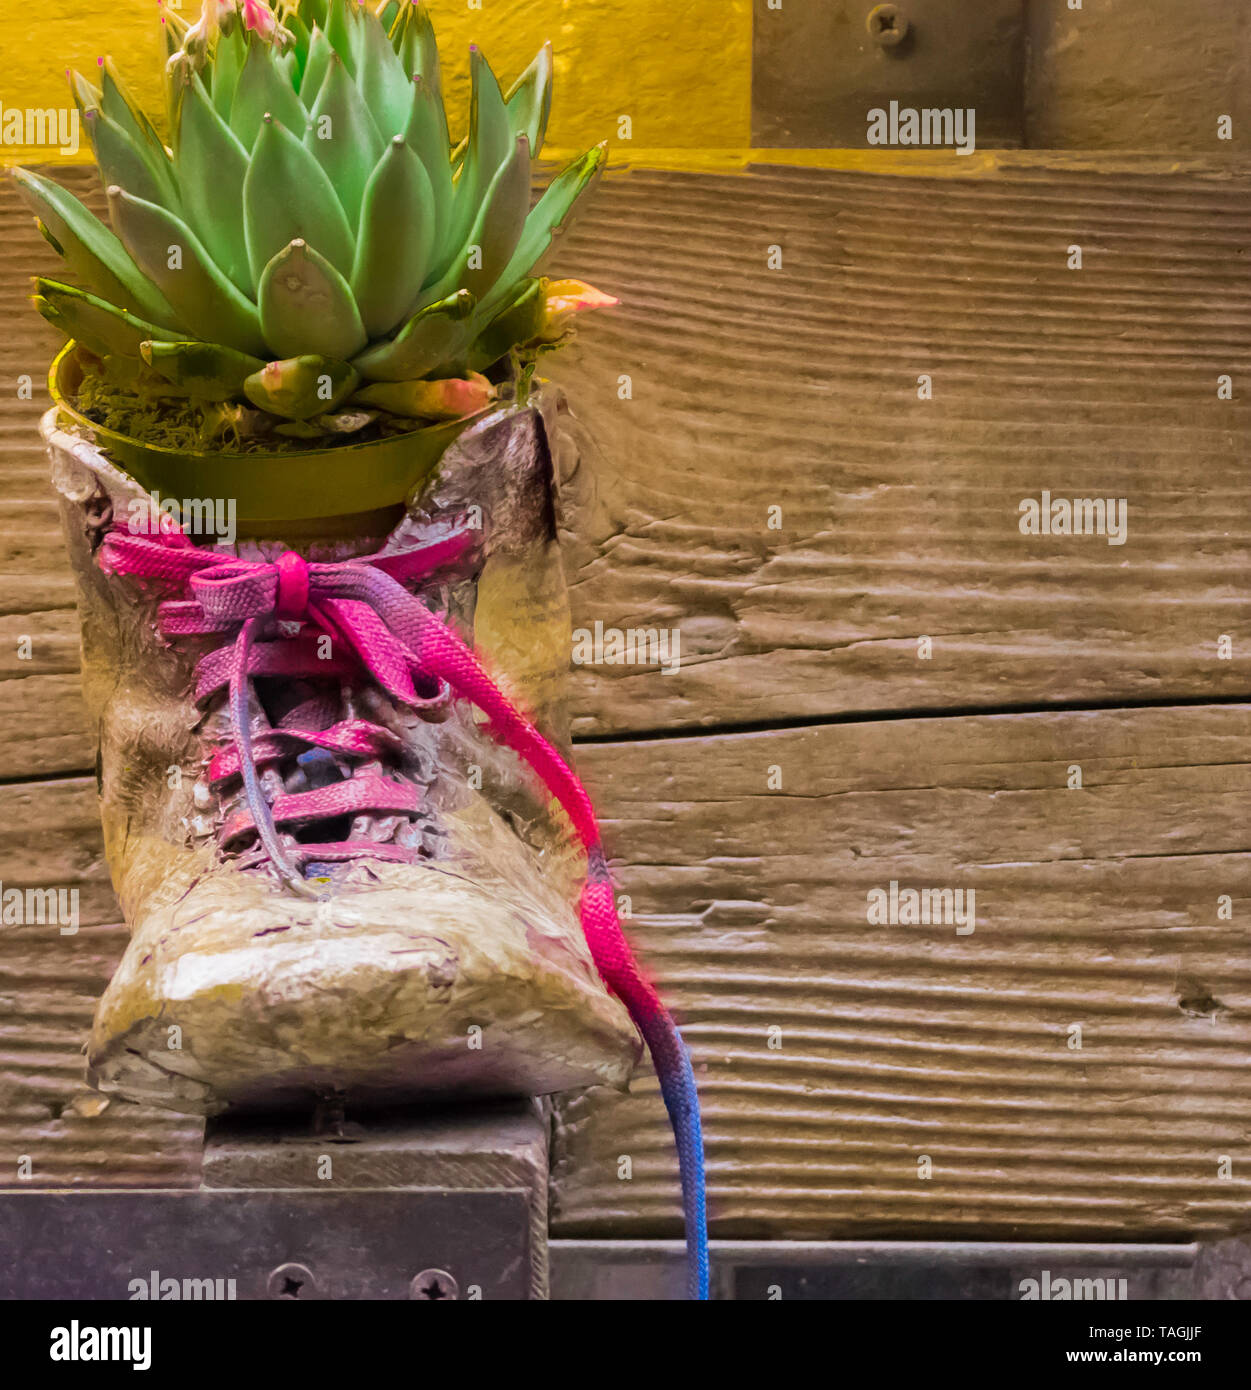 Montepulciano 2019. Used and colored shoe with a Cactus plant inside. April 2019 in Montepulciano. Stock Photo